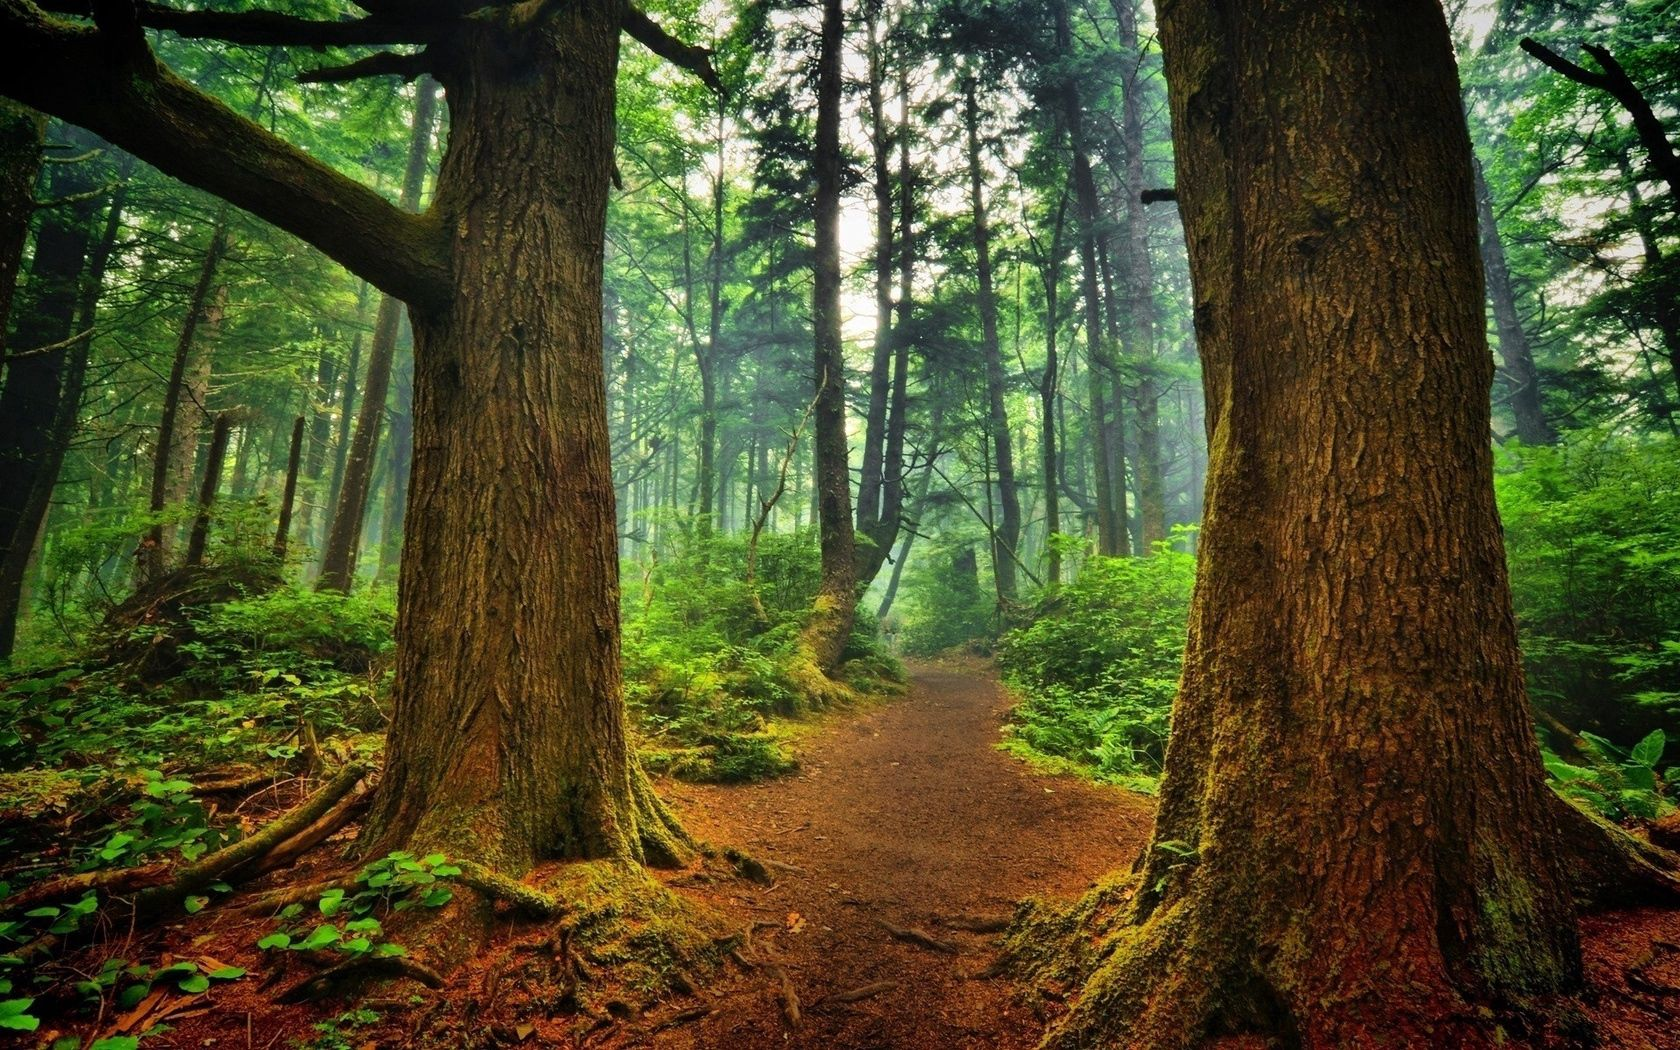 57119 download wallpaper Forest, Nature, Trees, Greens, Path, Roots, Winding, Sinuous, Mighty screensavers and pictures for free